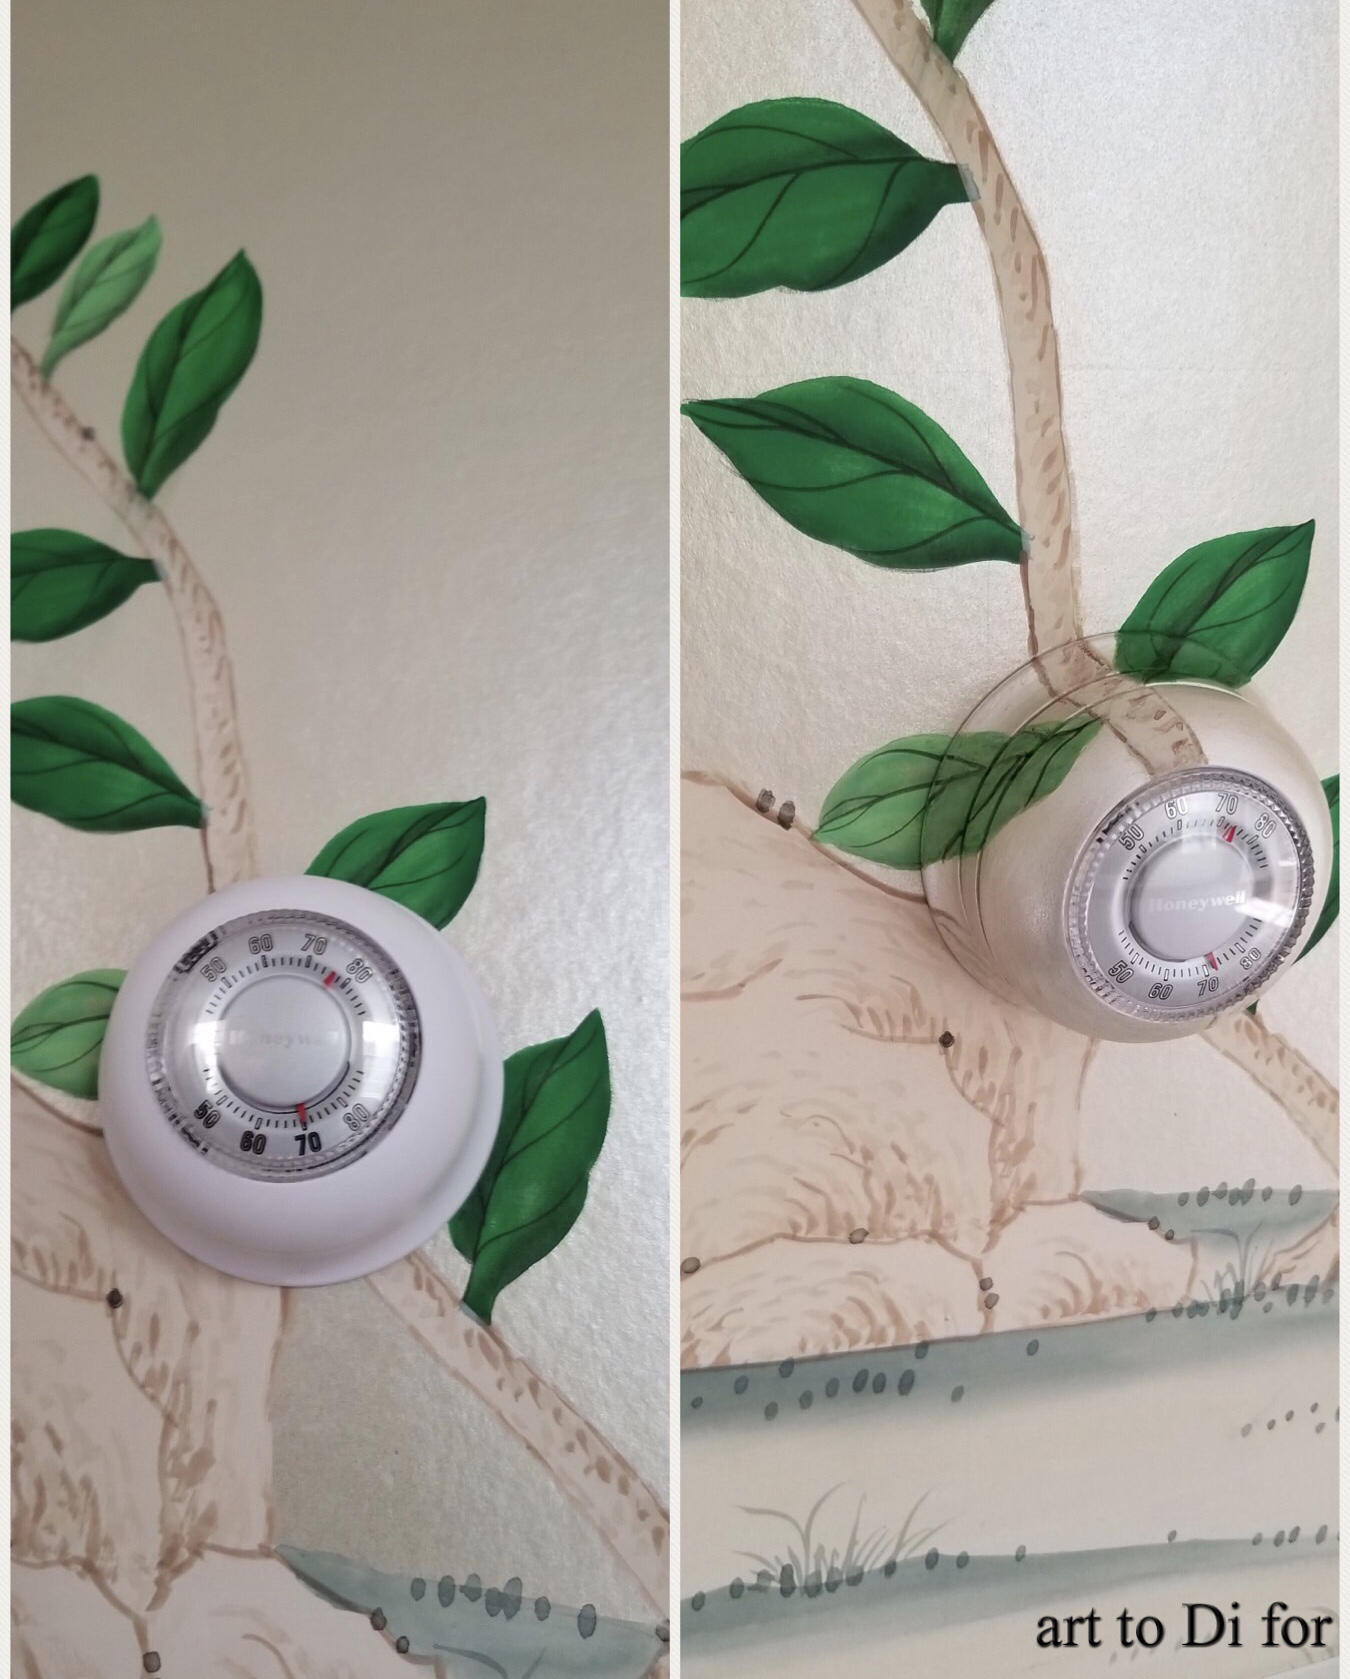 - In our final example, our past president of IDAL, Diane Sink Williams was asked to camouflage a thermostat that interrupted the gorgeous DeGournay wallpaper her client had installed. I think she did a pretty fabulous job given the metallic ground and stylized painting technique in the design!